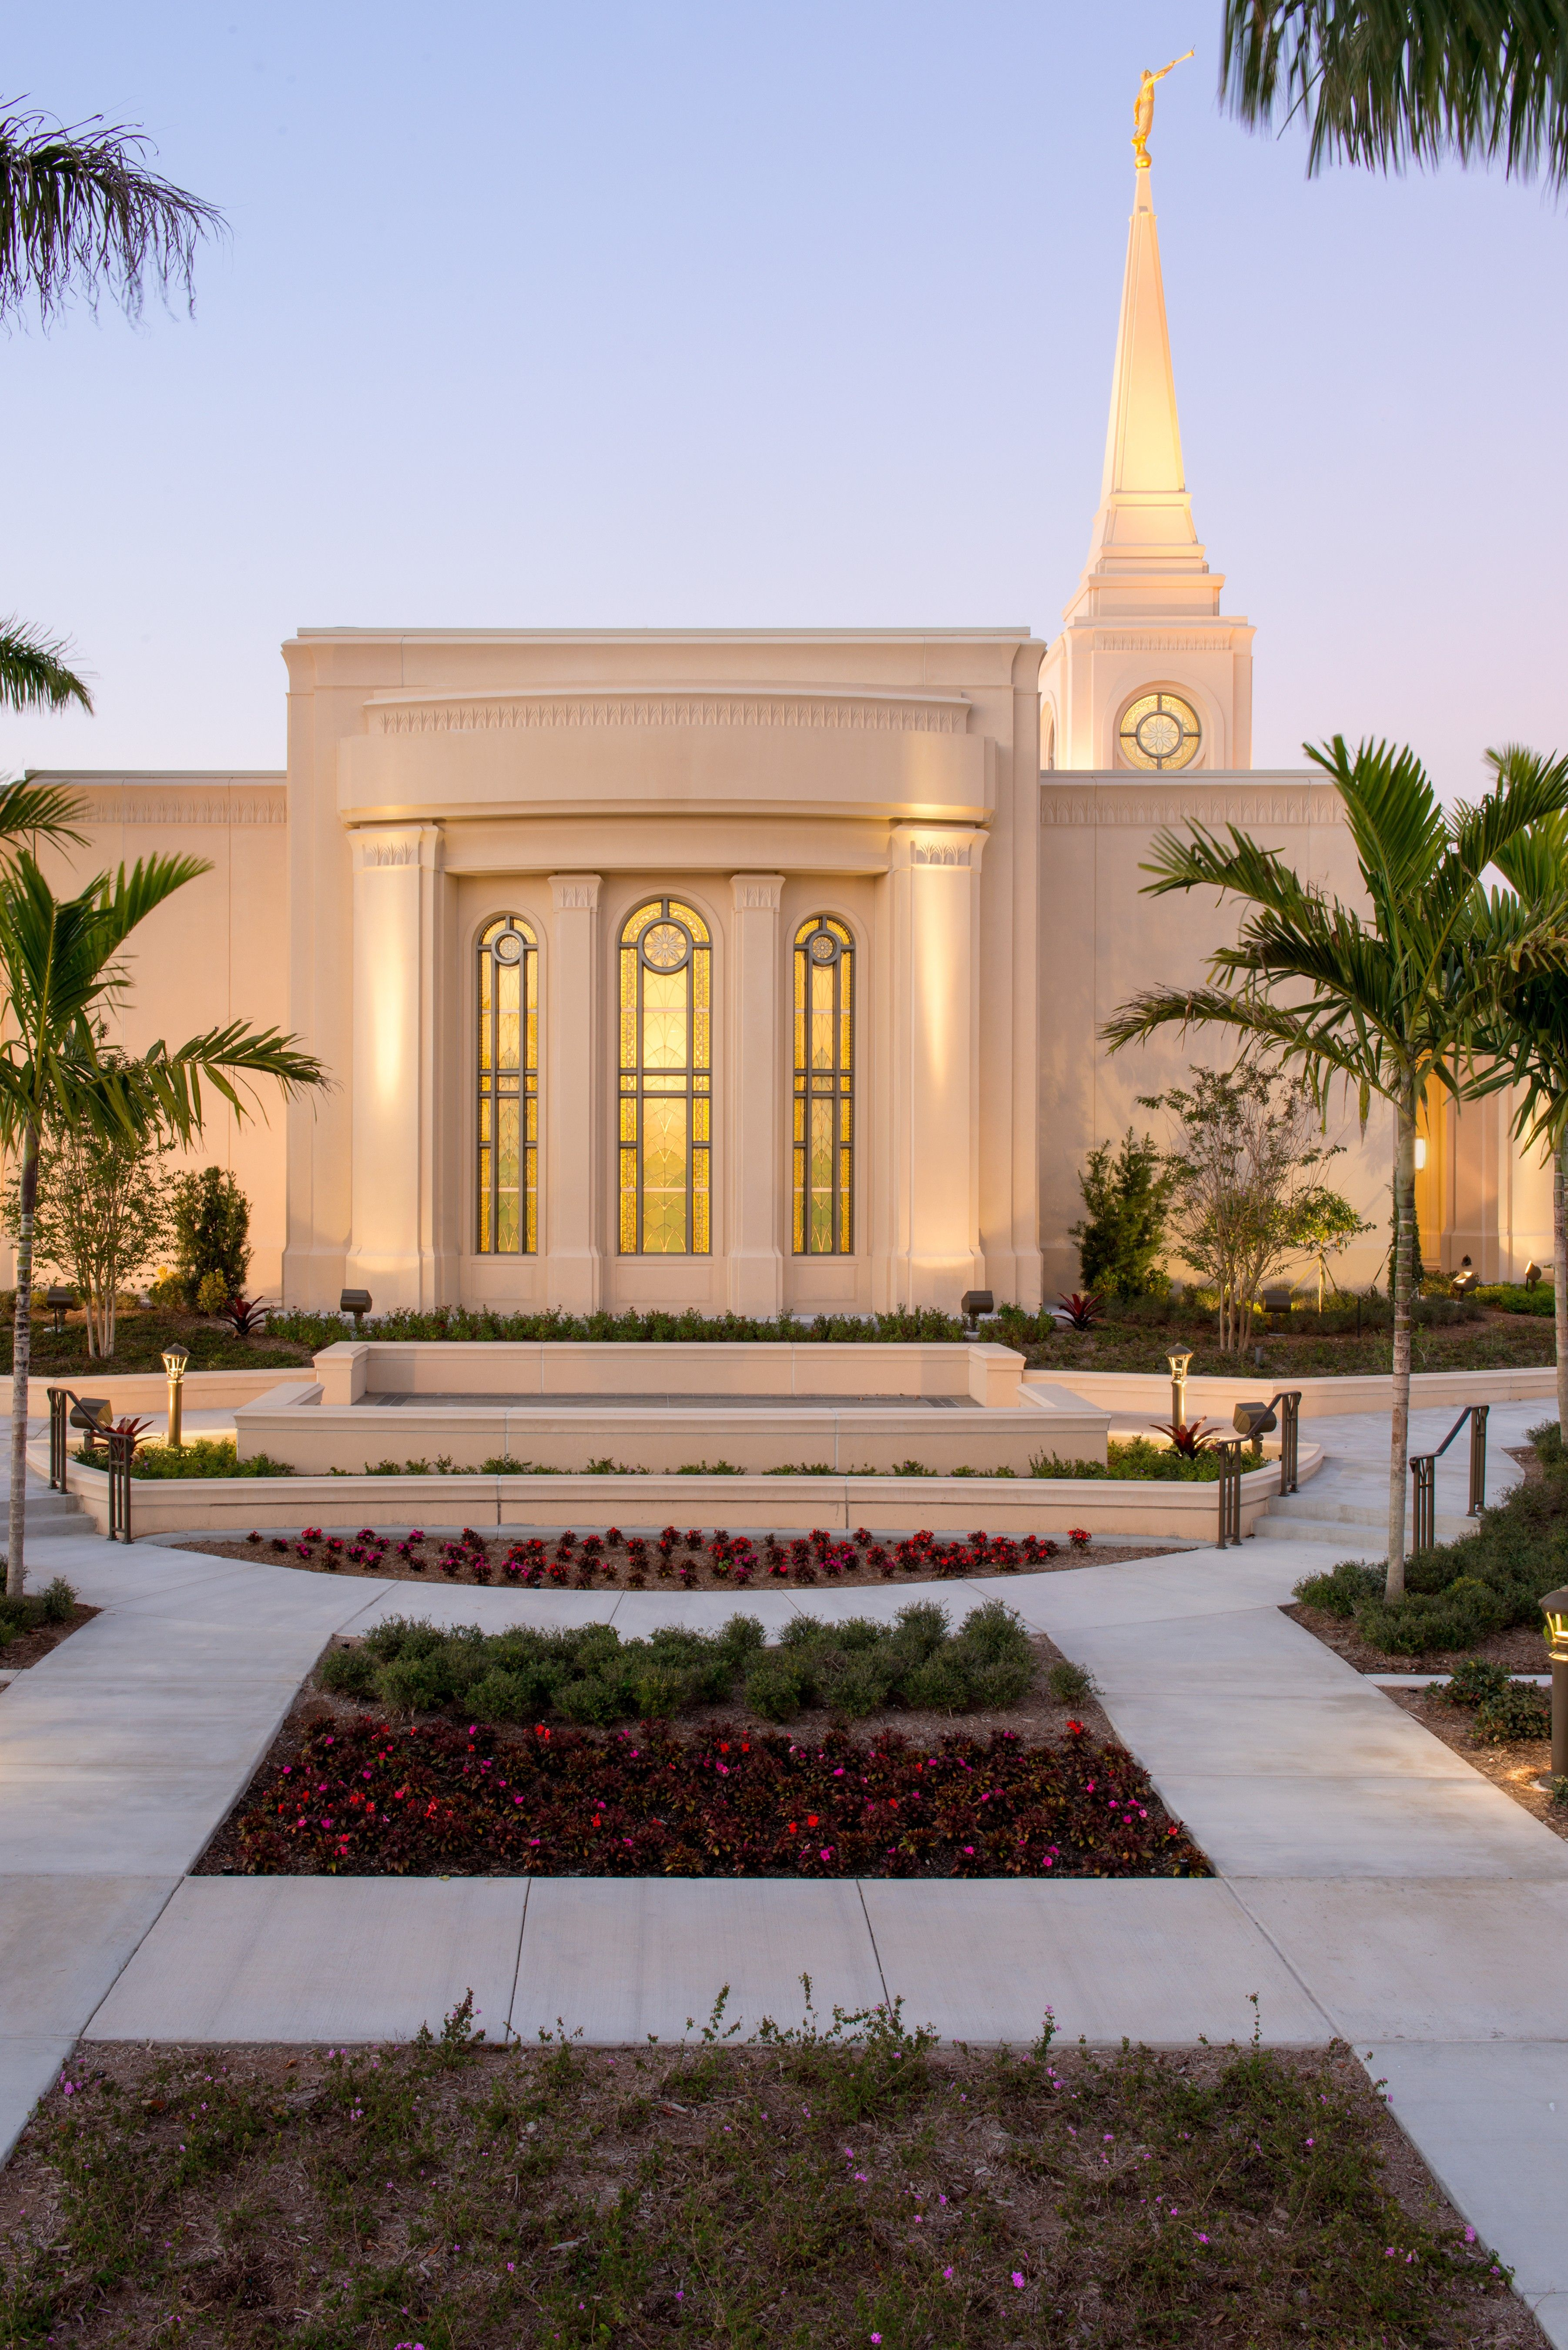 The windows of the Fort Lauderdale Florida Temple lit up at night.